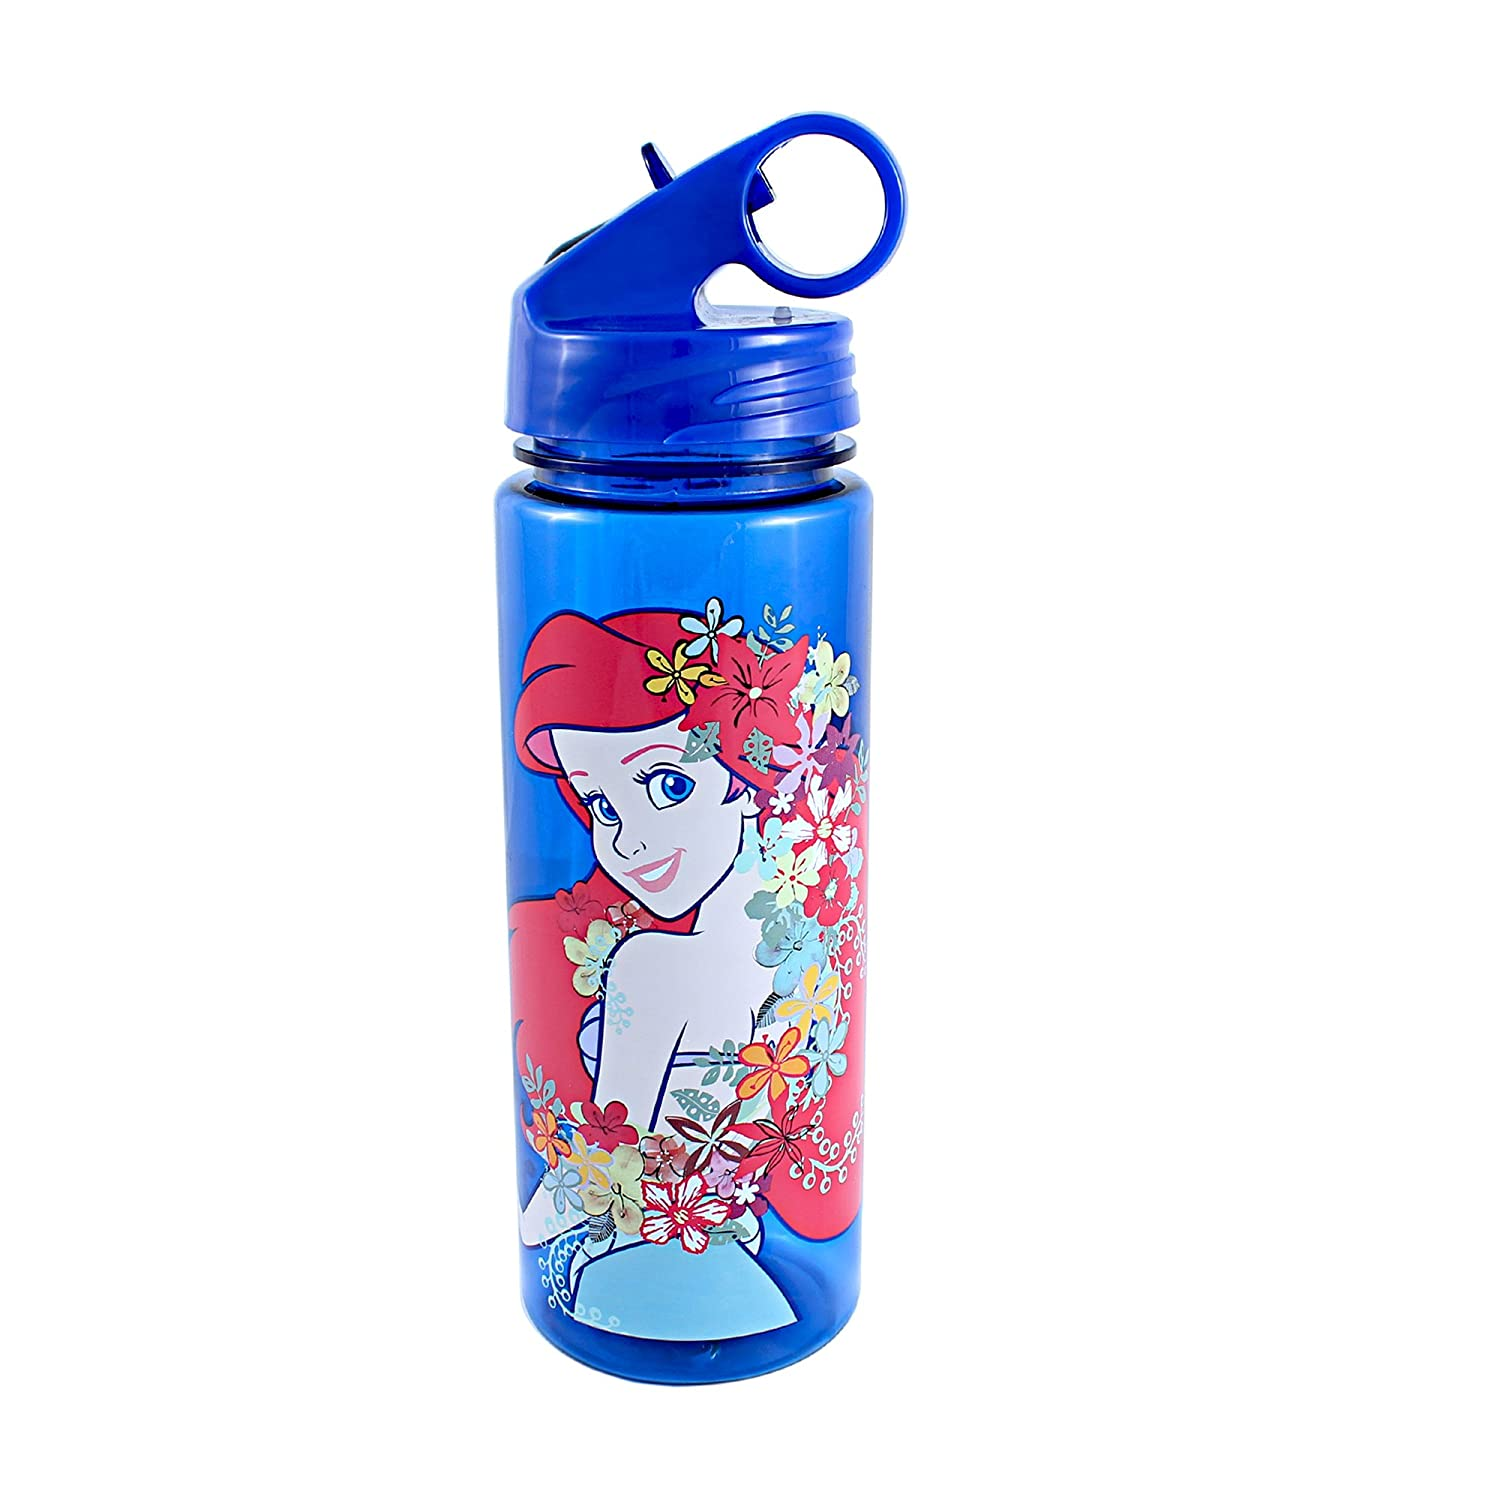 c5ba3af200 Silver Buffalo DQ7564 Disney Little Mermaid Pose BPA-Free Tritan Water  Bottle, 20 oz., Blue: Amazon.co.uk: Kitchen & Home